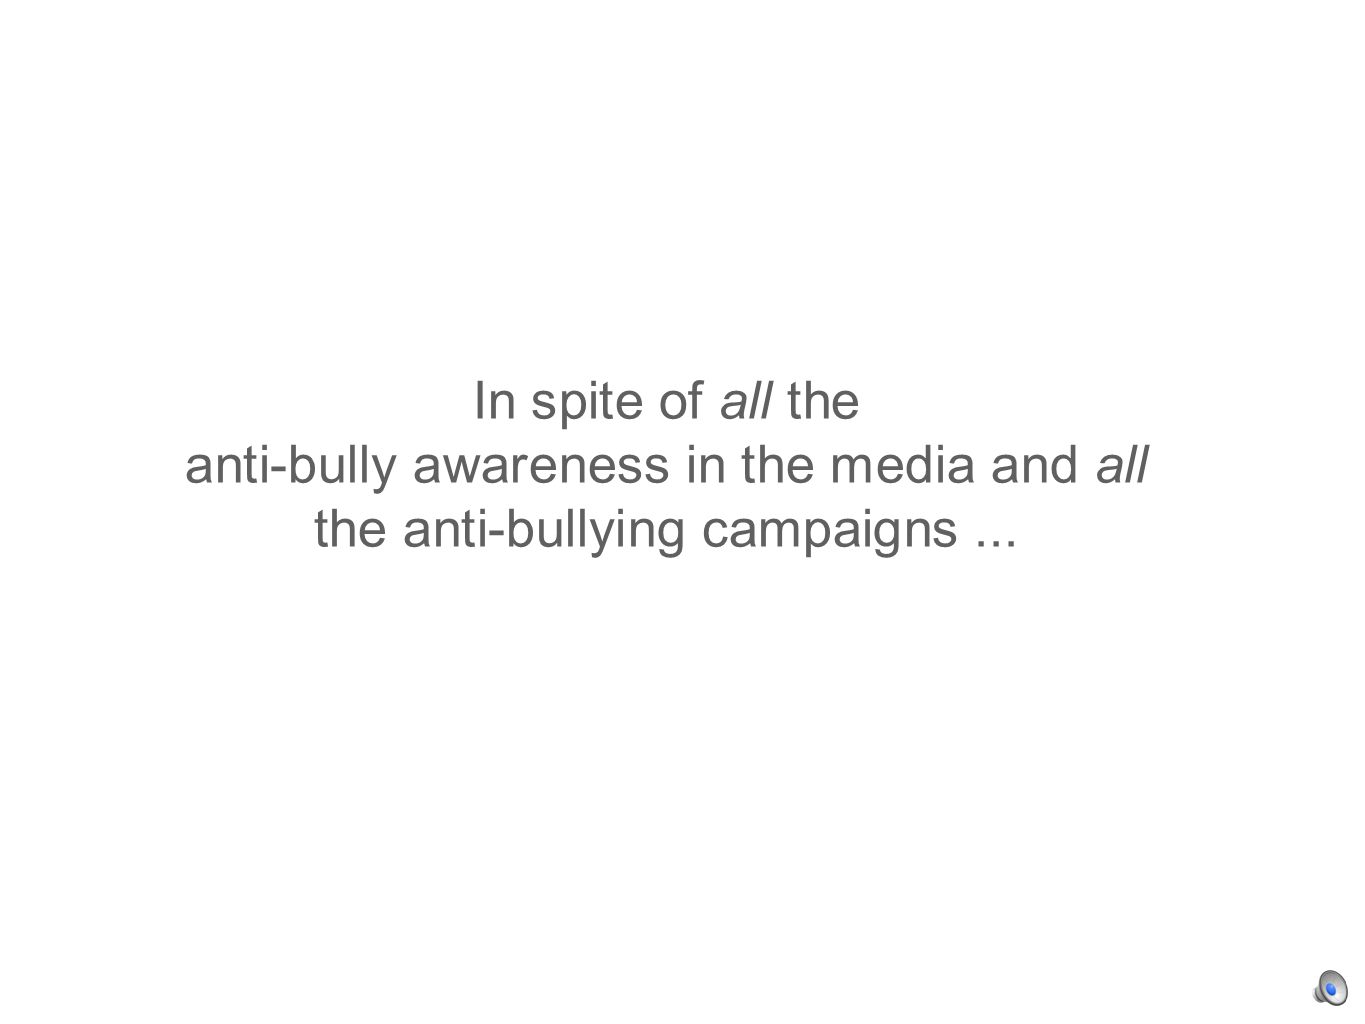 In spite of all the anti-bully awareness in the media and all the anti-bullying campaigns...